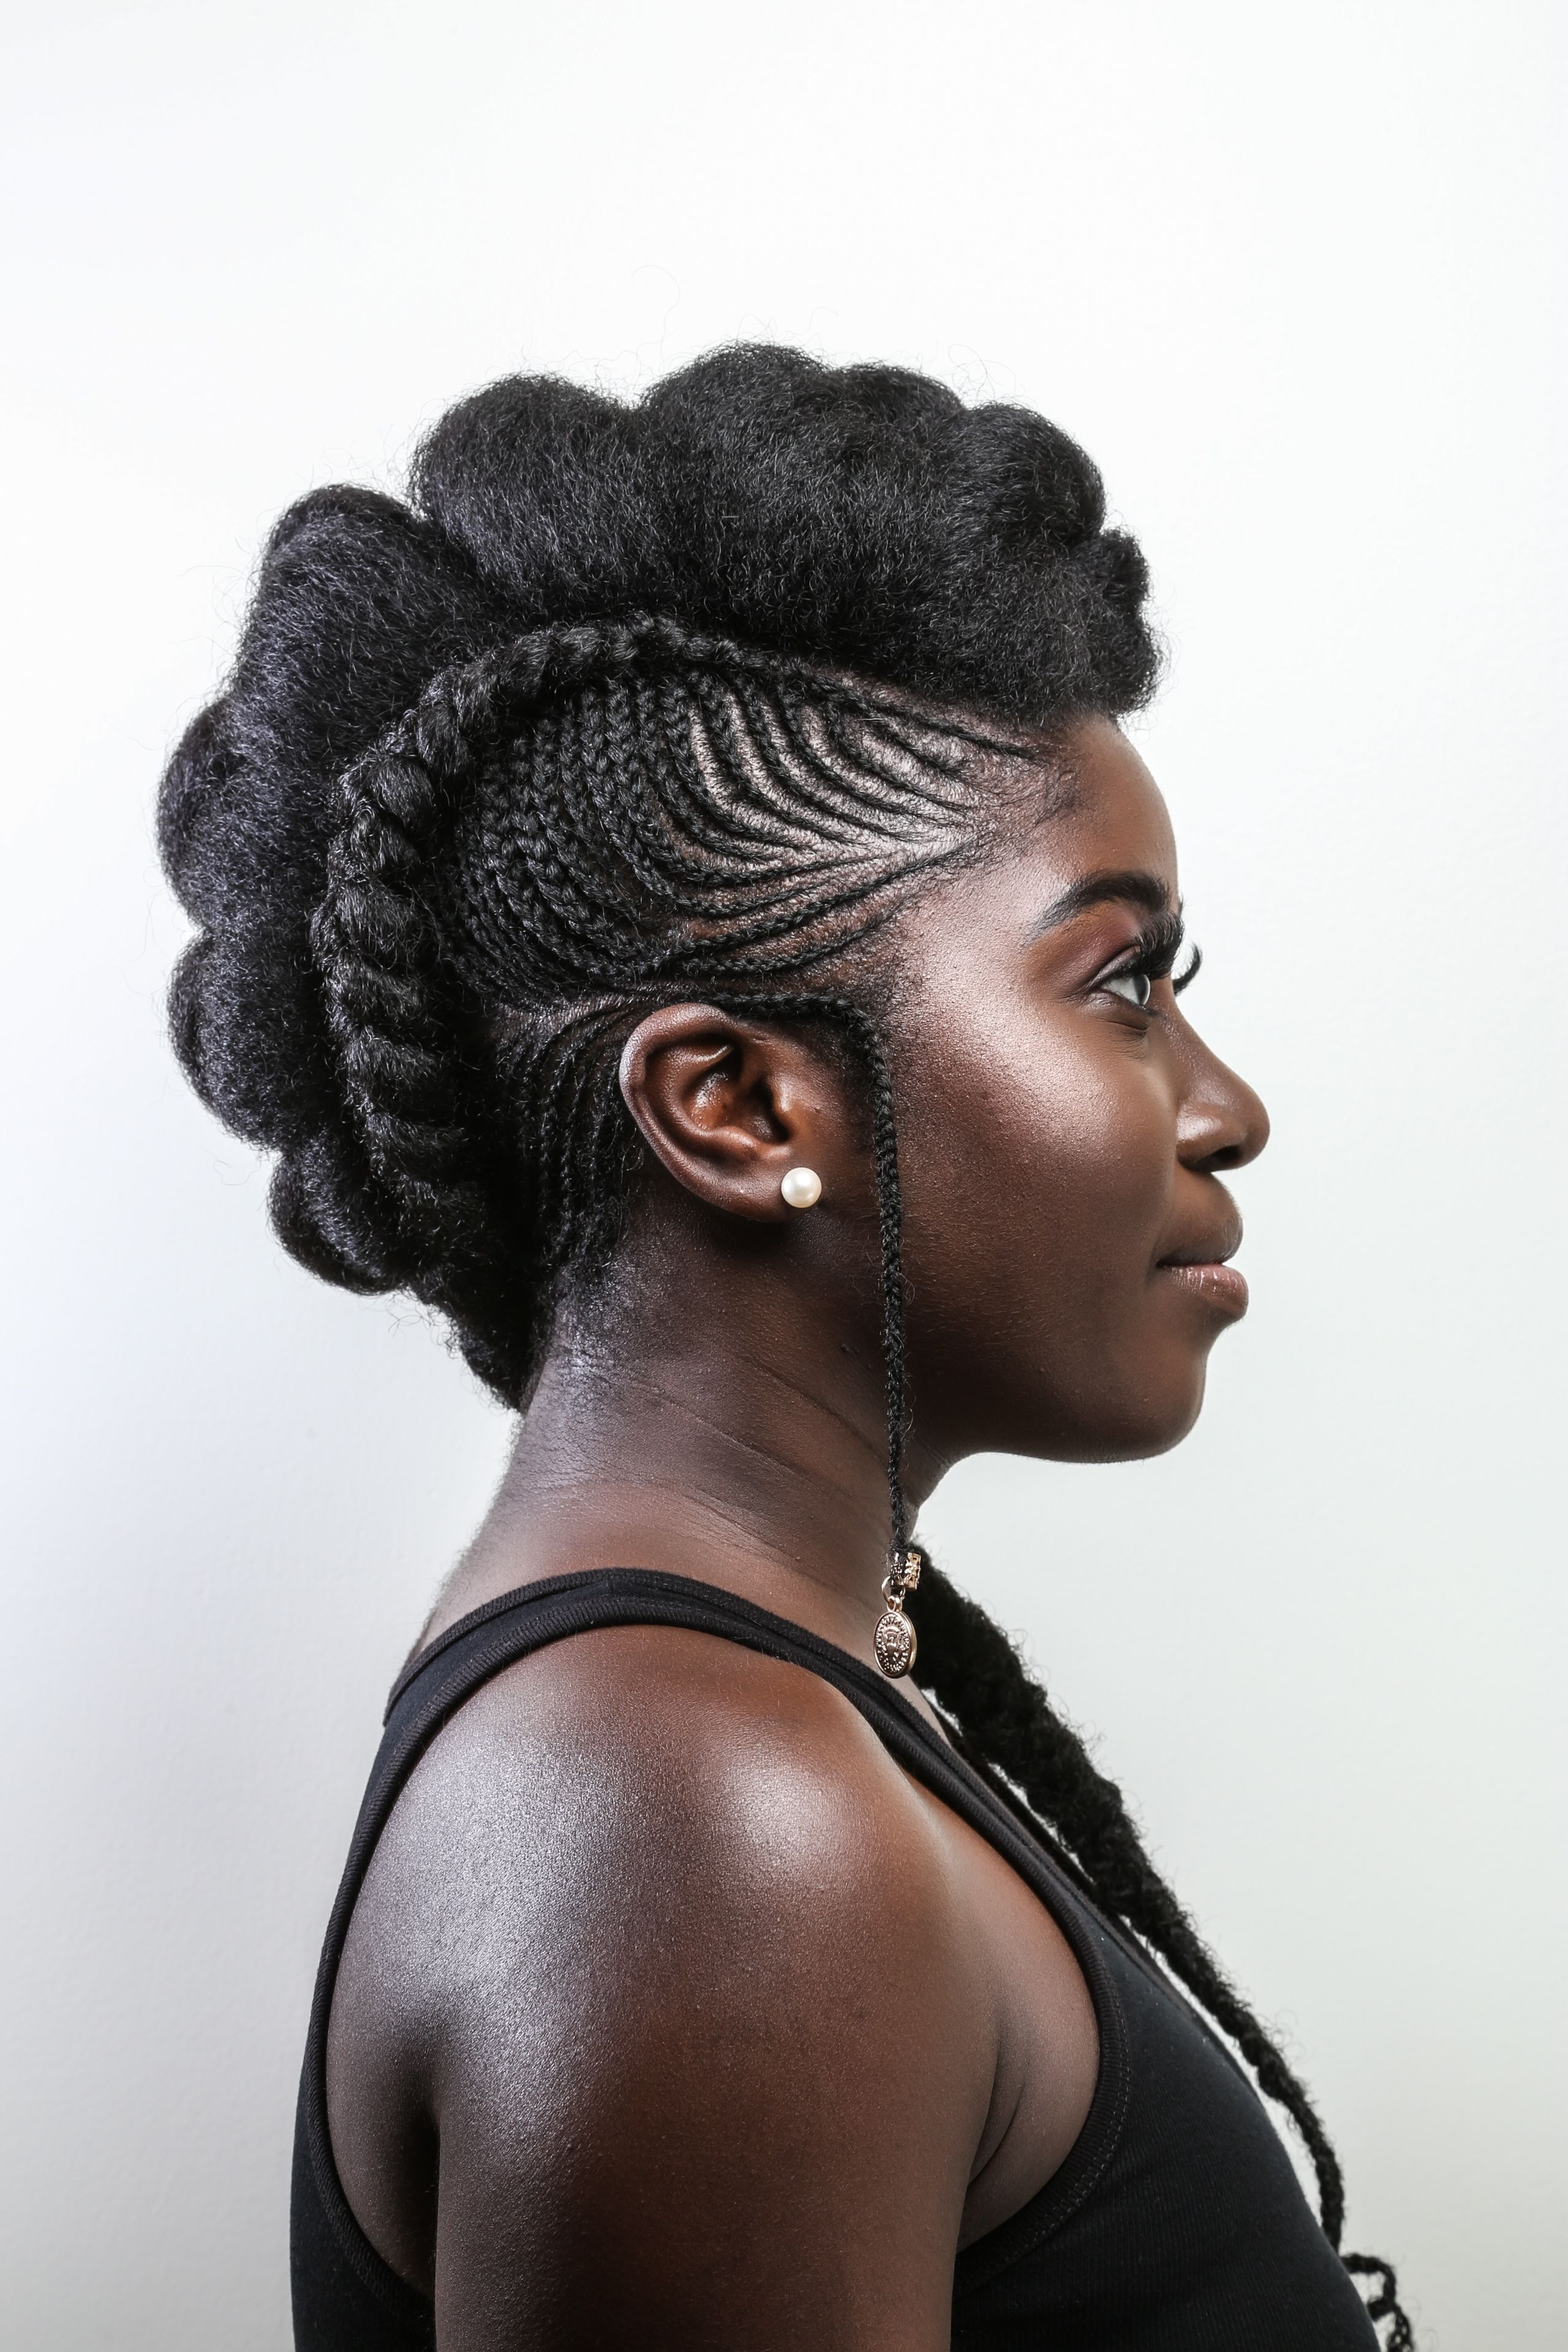 Hair Art Hair Styles Braids For Black Hair African Braids Styles